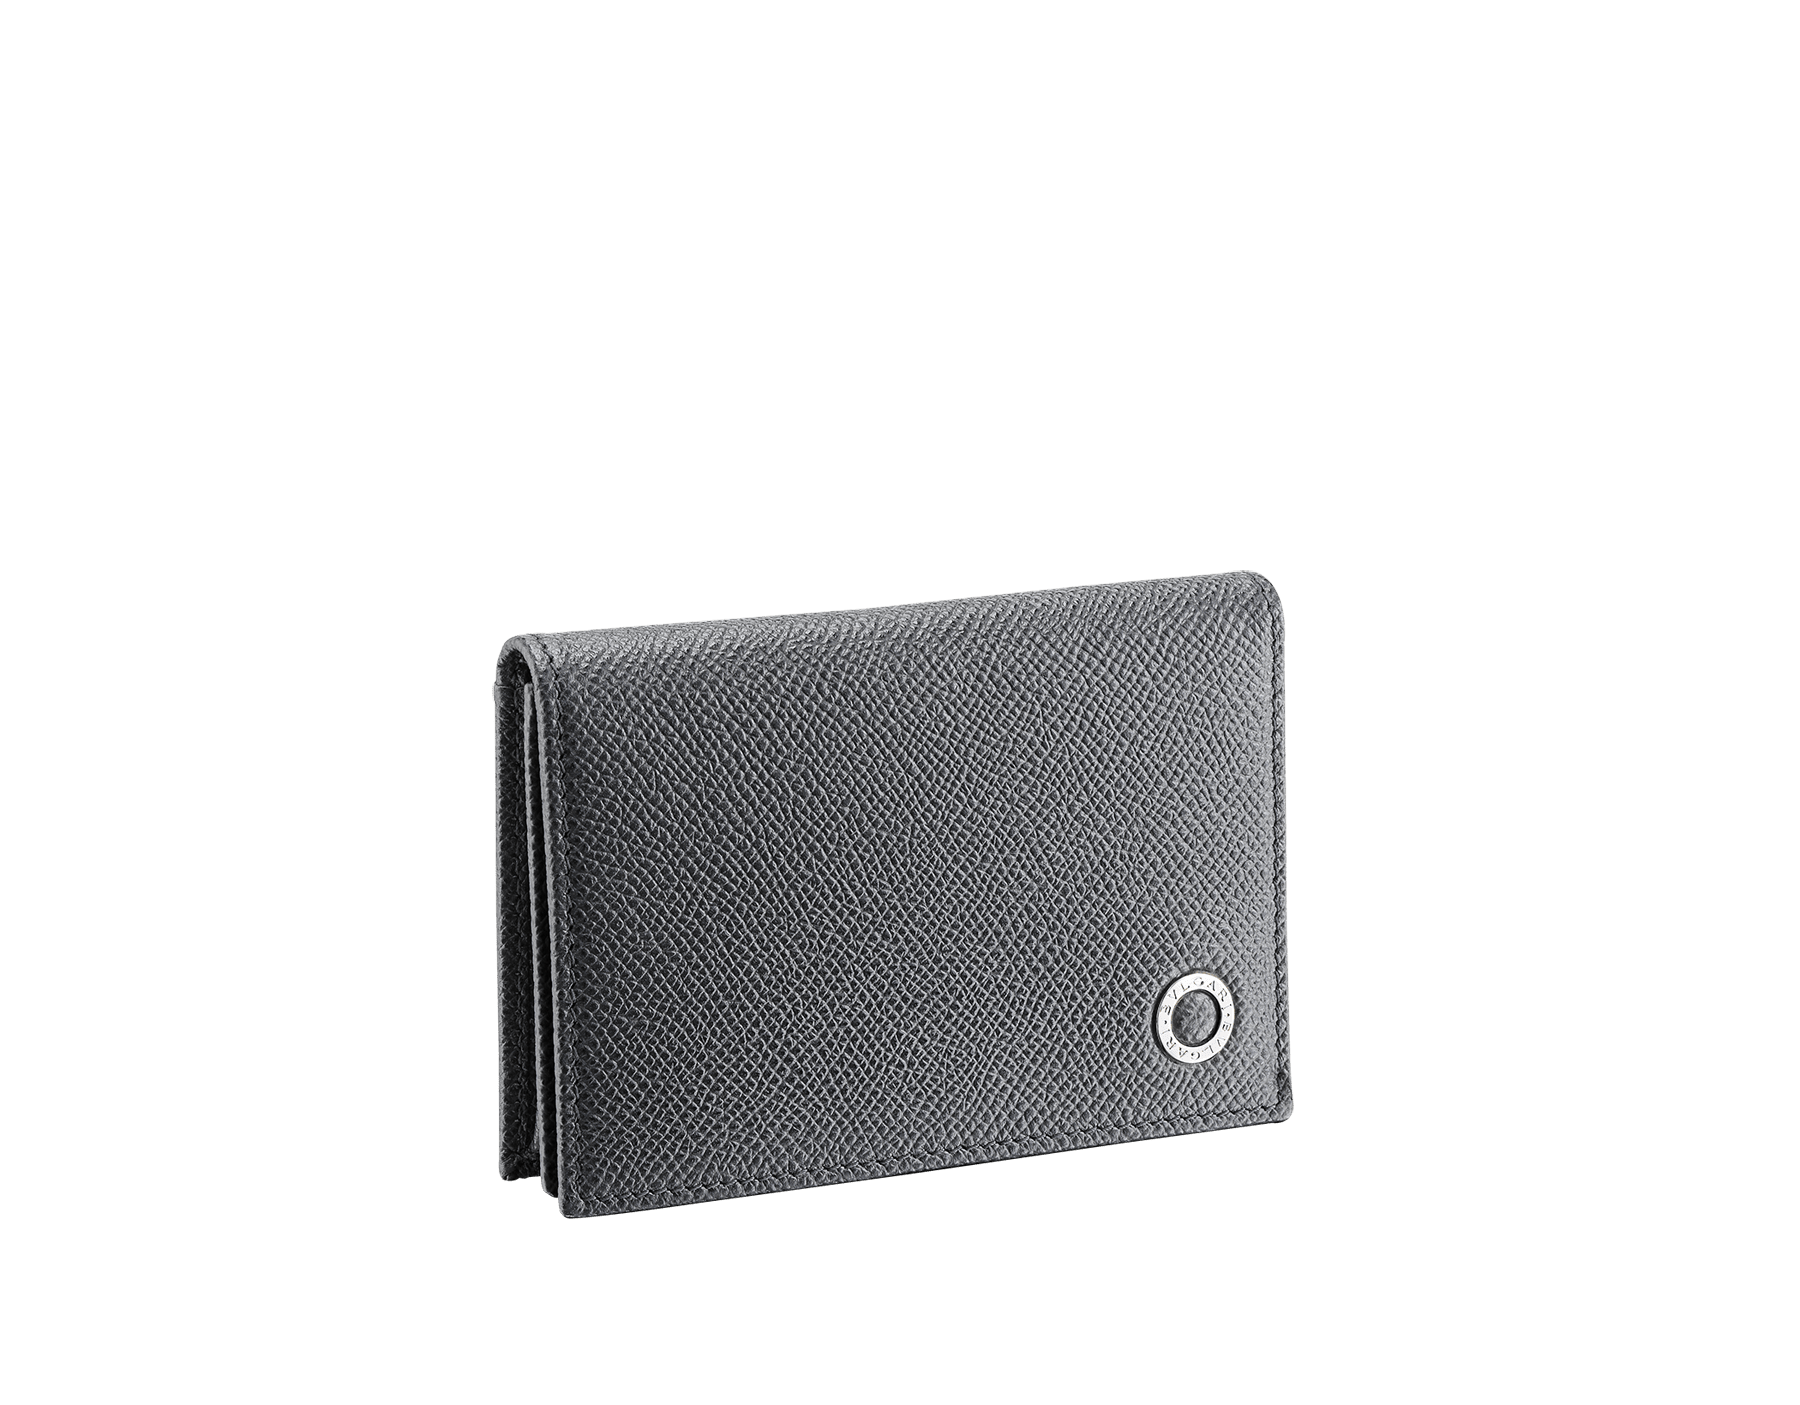 BVLGARI BVLGARI business card holder in charcoal diamond and emerald green grain calf leather, with brass palladium plated logo décor. 289115 image 1